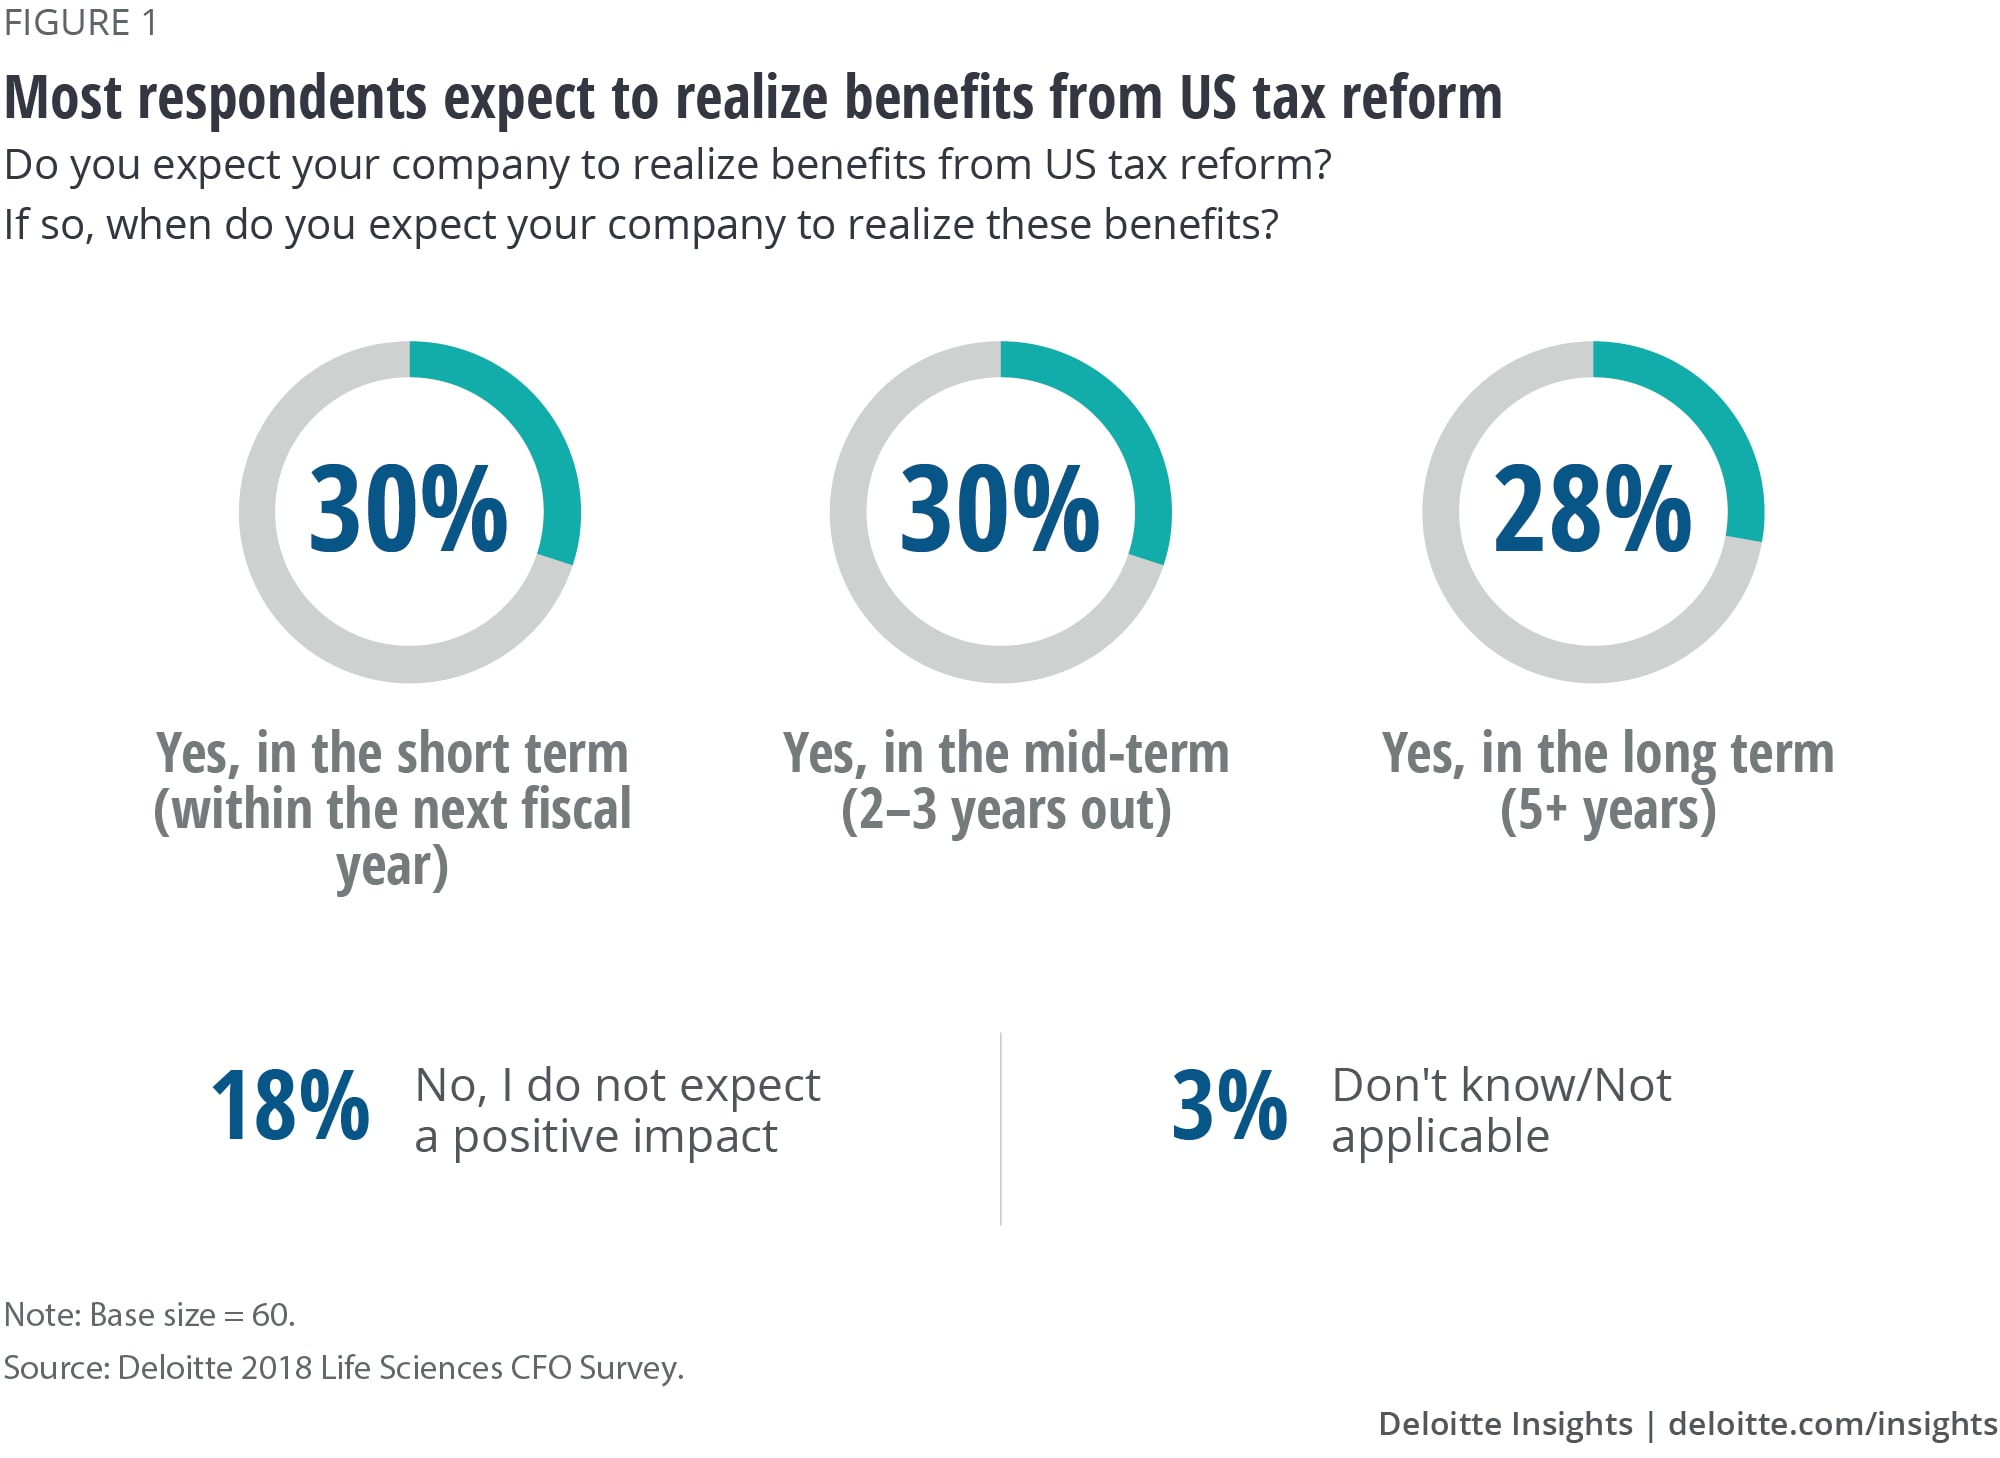 Most respondents expect to realize benefits from US tax reform